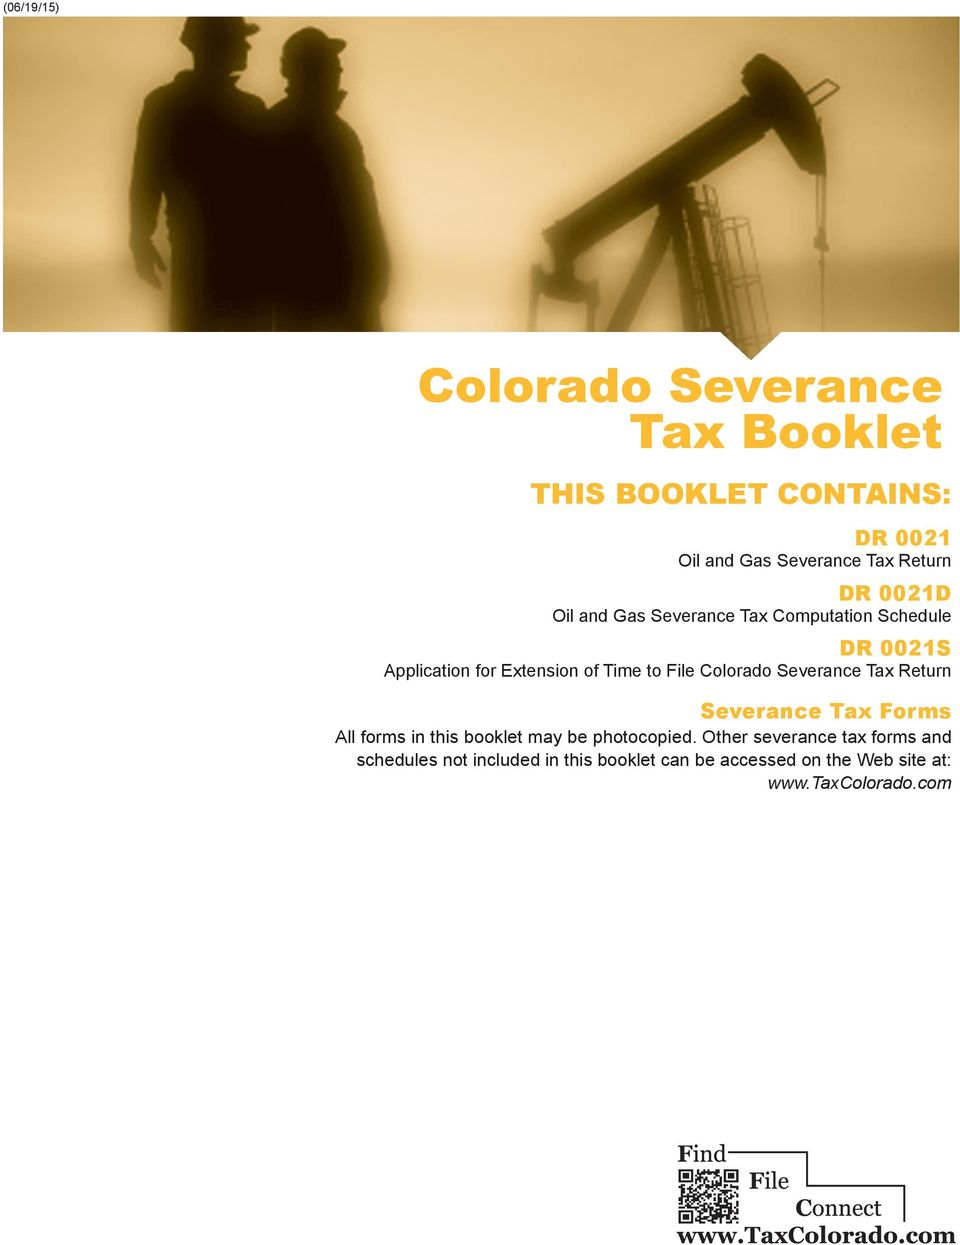 Colorado Severance Tax Return Severance Tax Forms All forms in this booklet may be photocopied.